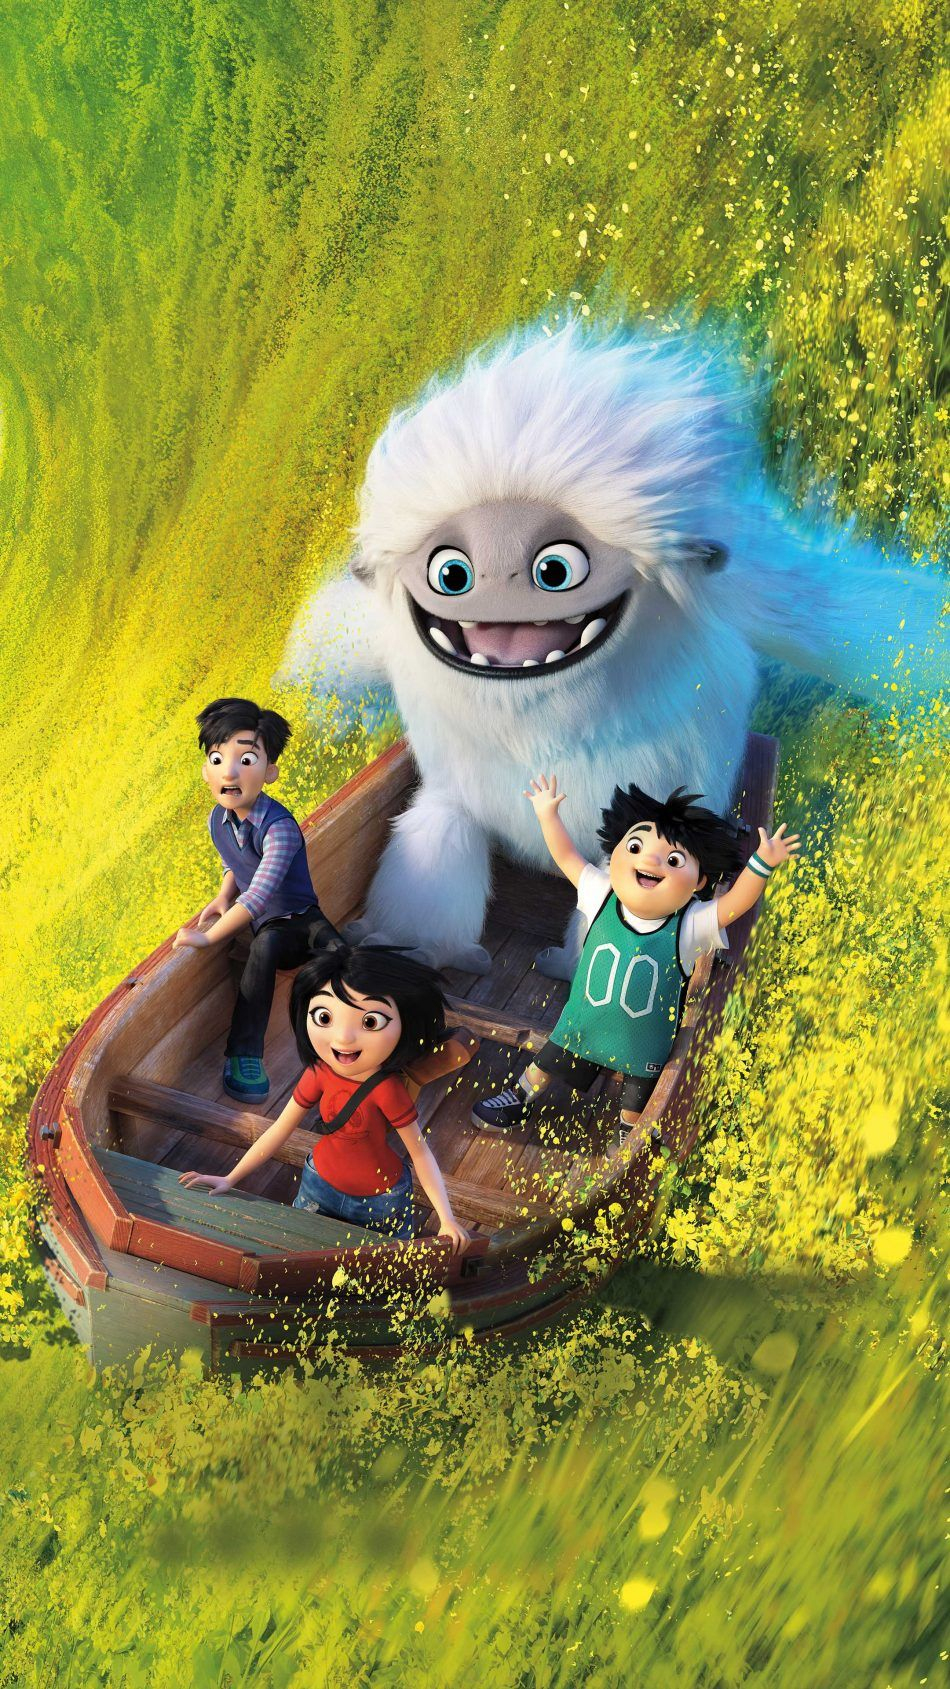 Abominable Animation Adventure Comedy 2019 pour Film D Animation Dreamworks